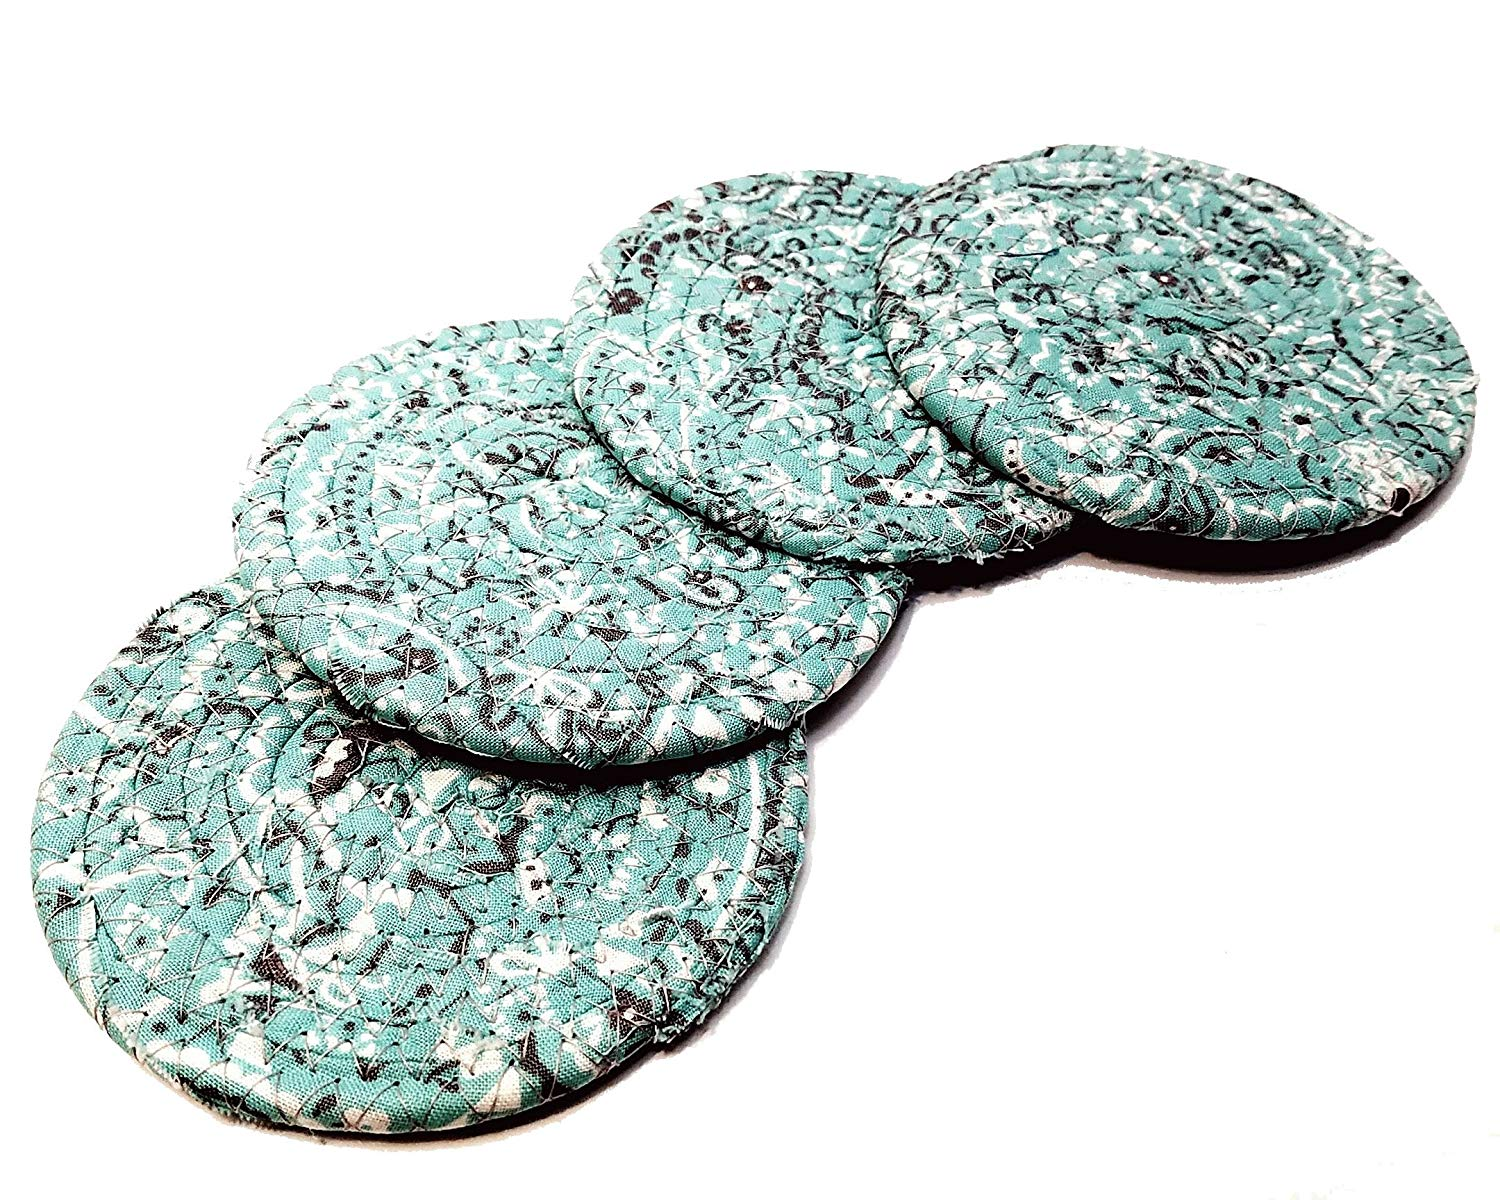 Bandana Print Fabric Coasters, Handmade, Set of 4, Turquoise Light Teal Blue/Green, Coiled Rope, Bohemian Style Drink Coasters